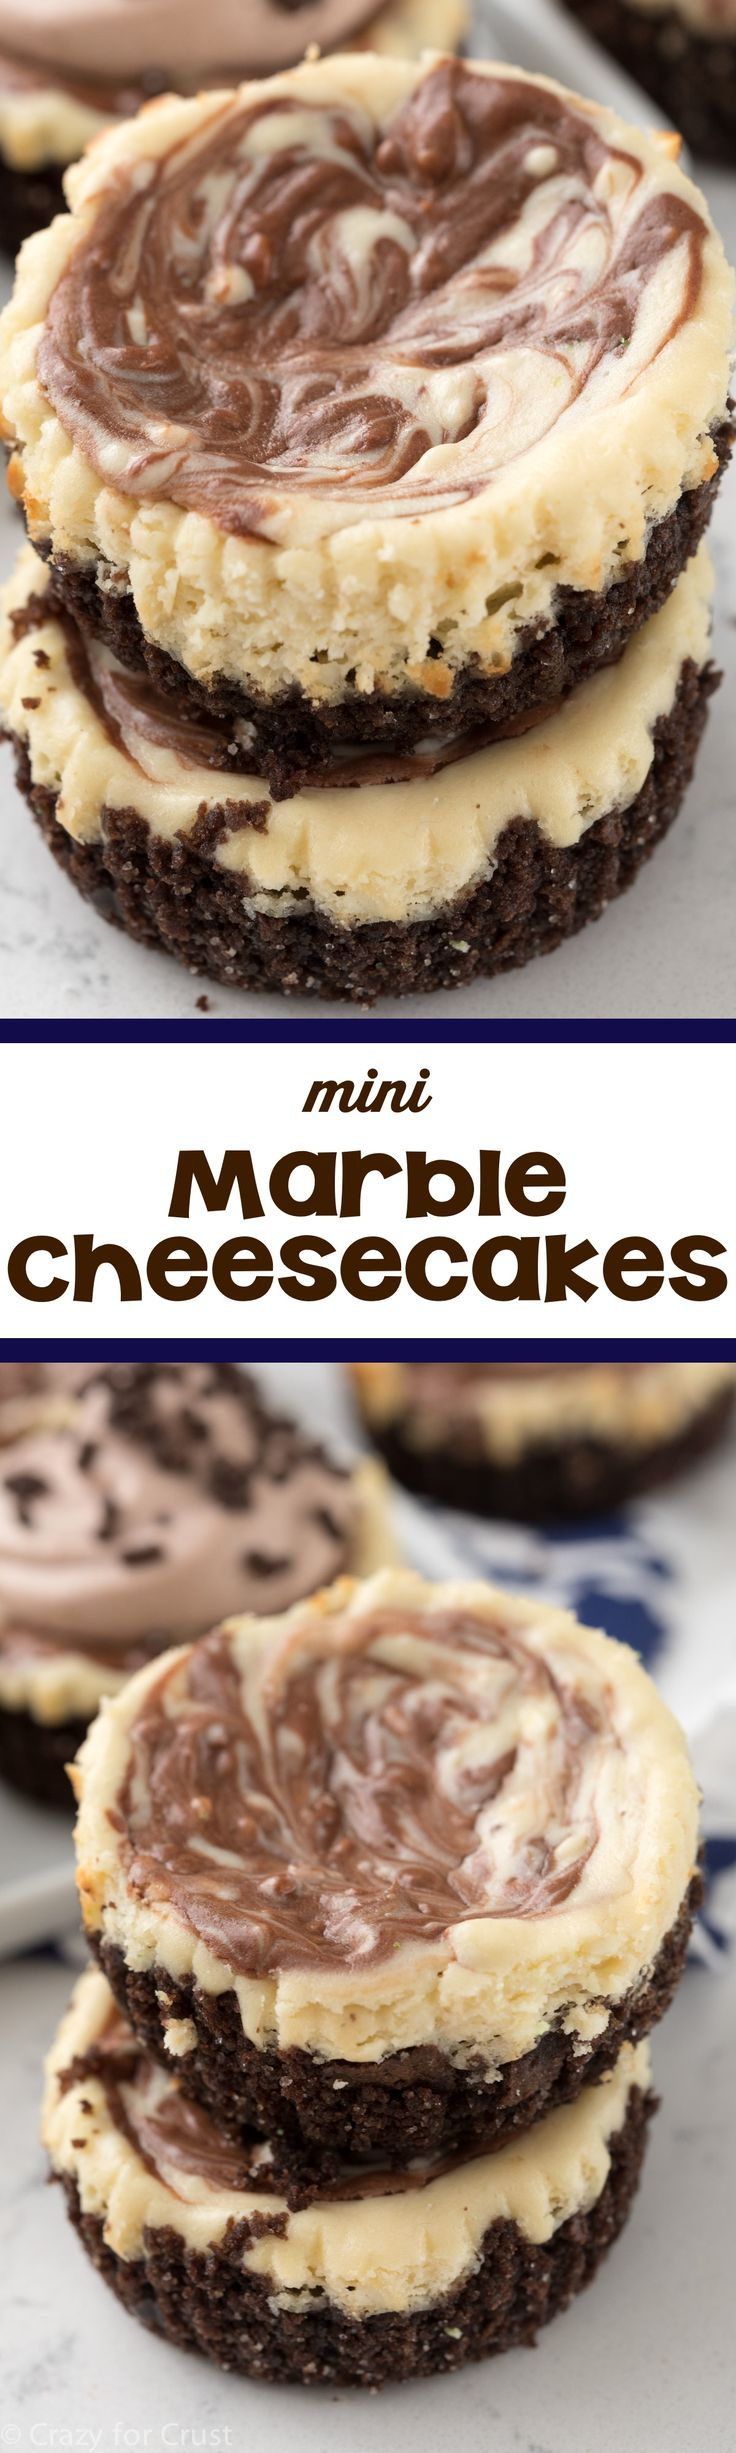 Mini Marble Cheesecakes - these easy mini cheesecakes are marbled with chocolate. These are perfect all year long!